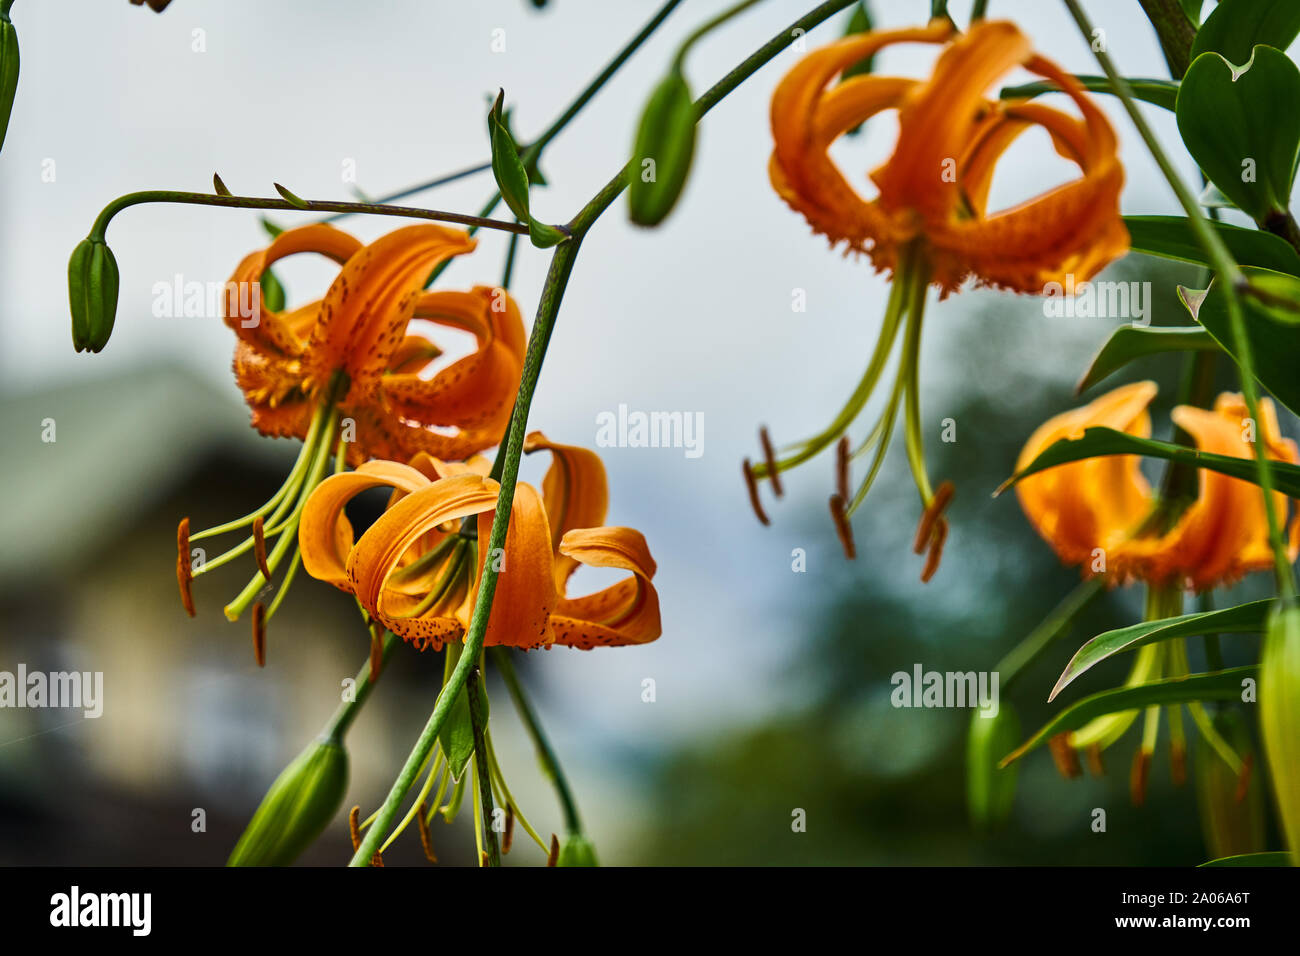 Tiger lily, Lilium lancifolium, with orange blossoms and long pistils and pollen stems, with closed and open blossoms, with blurred background. Stock Photo